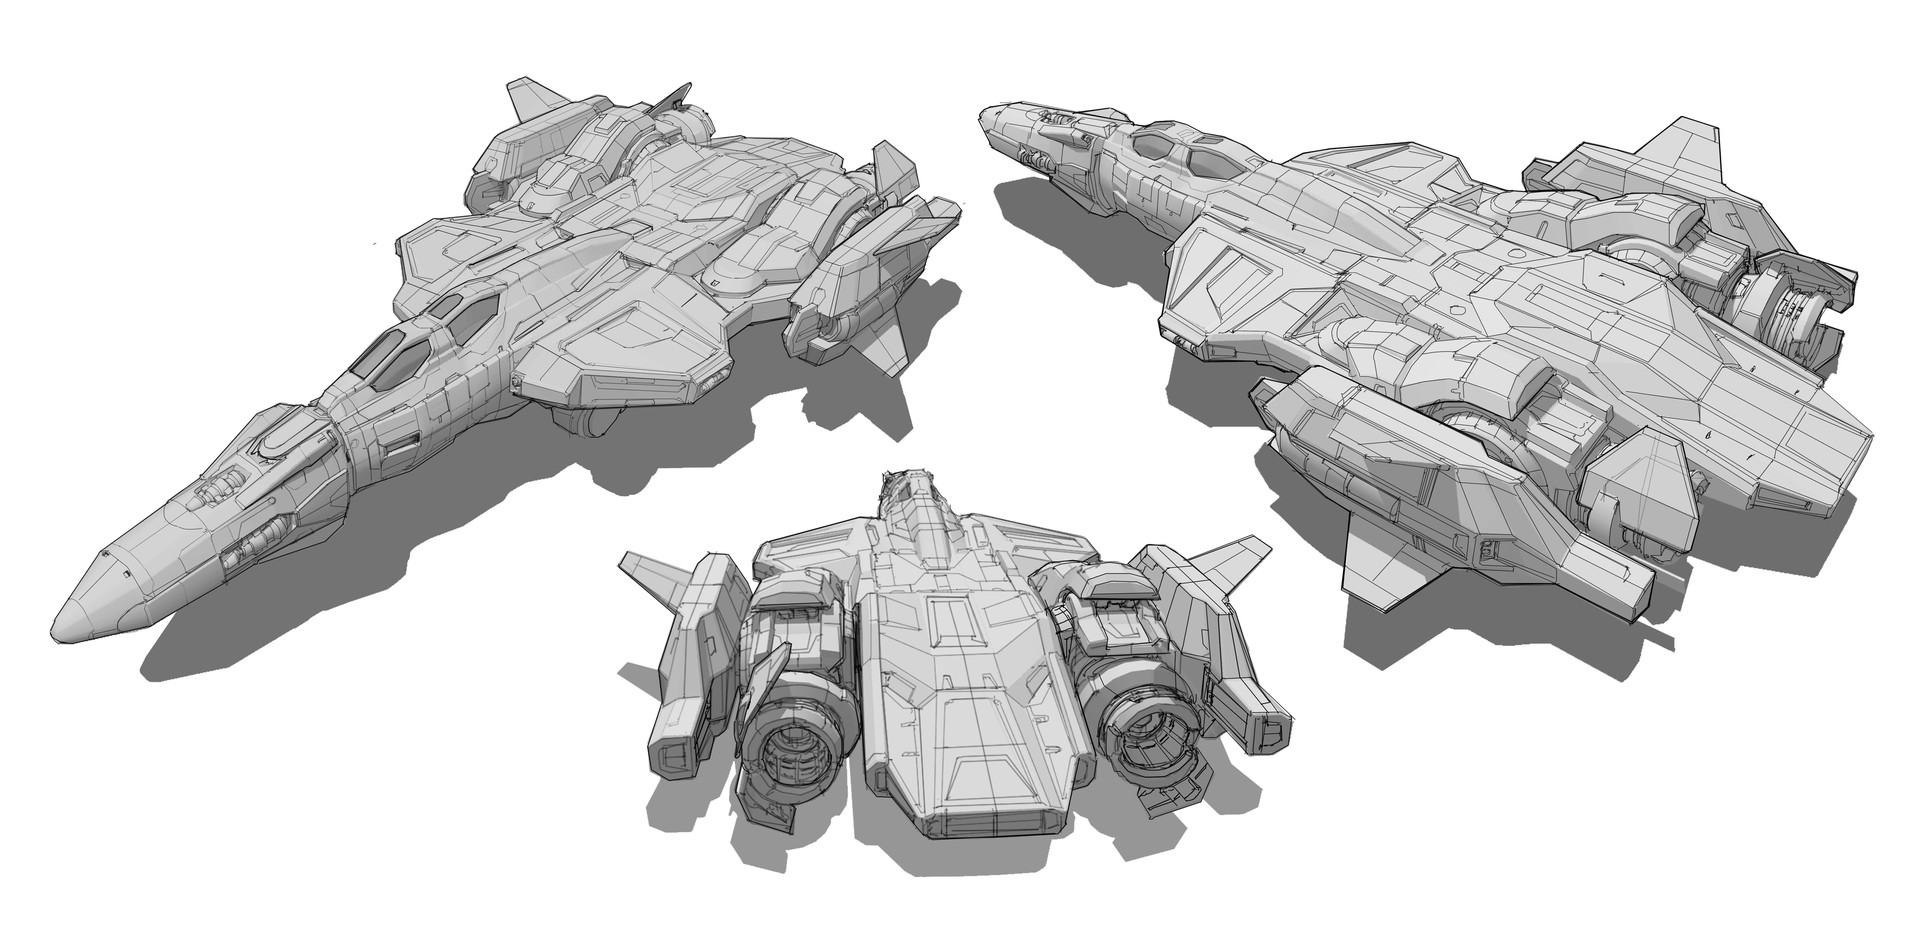 SF-47A Thresher  Concepts